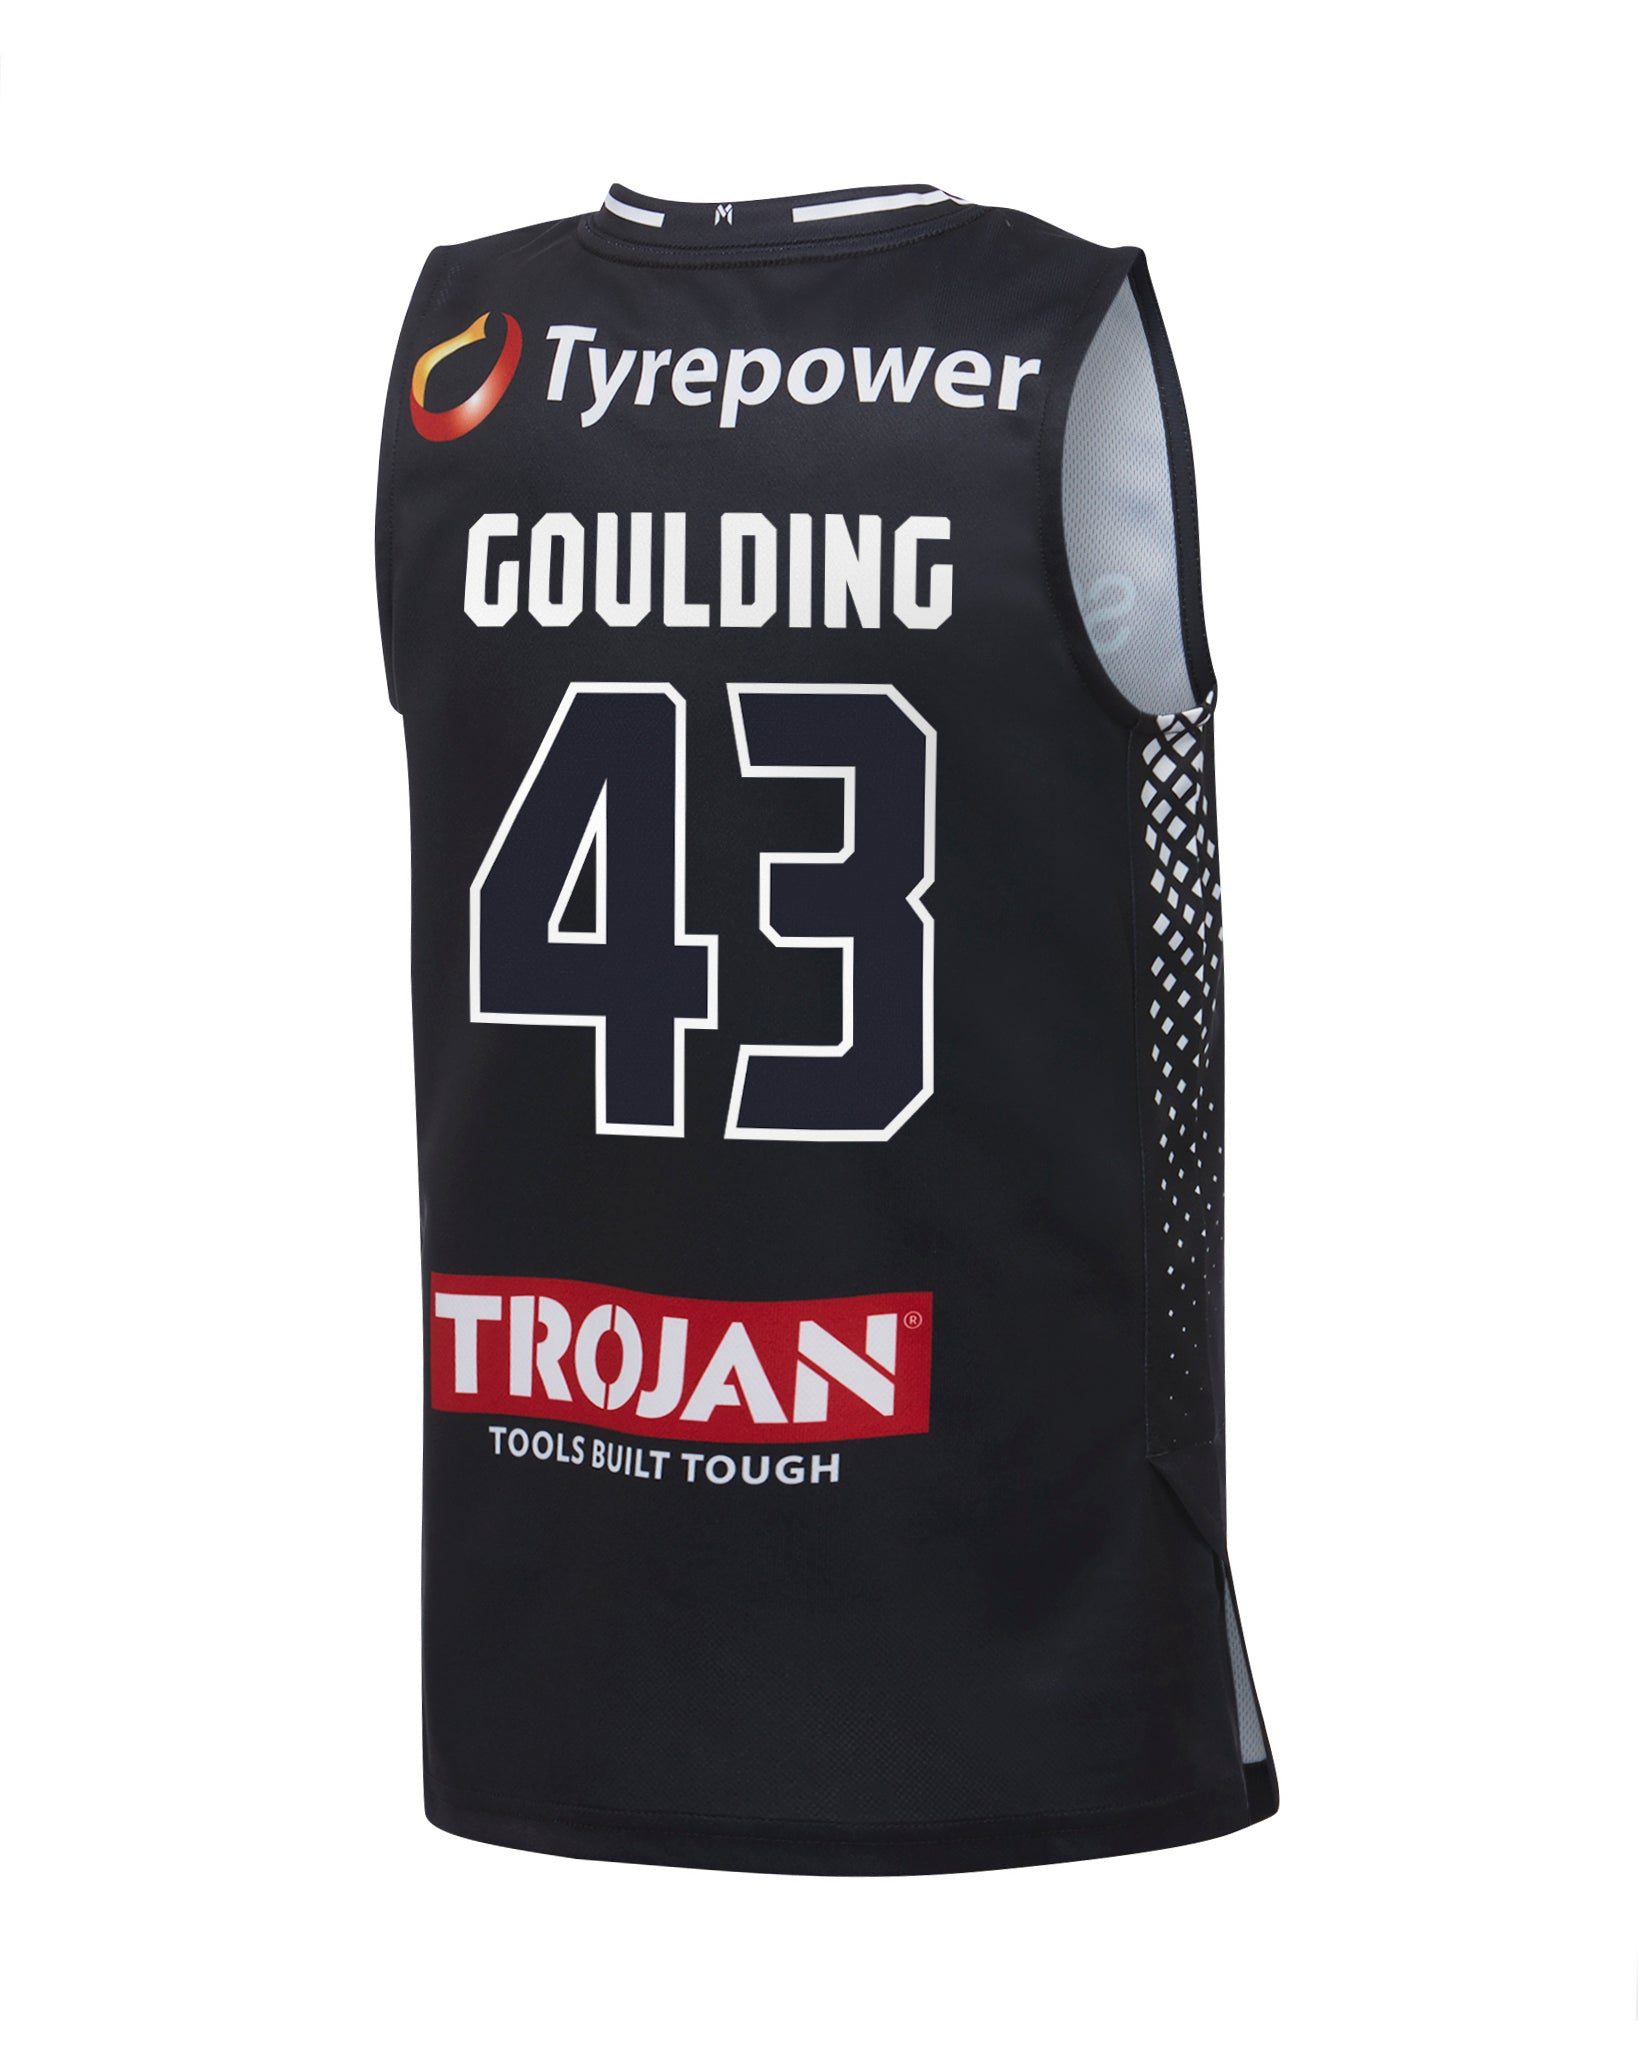 melbourne-united-19-20-youth-authentic-home-jersey-chris-goulding - Back Image